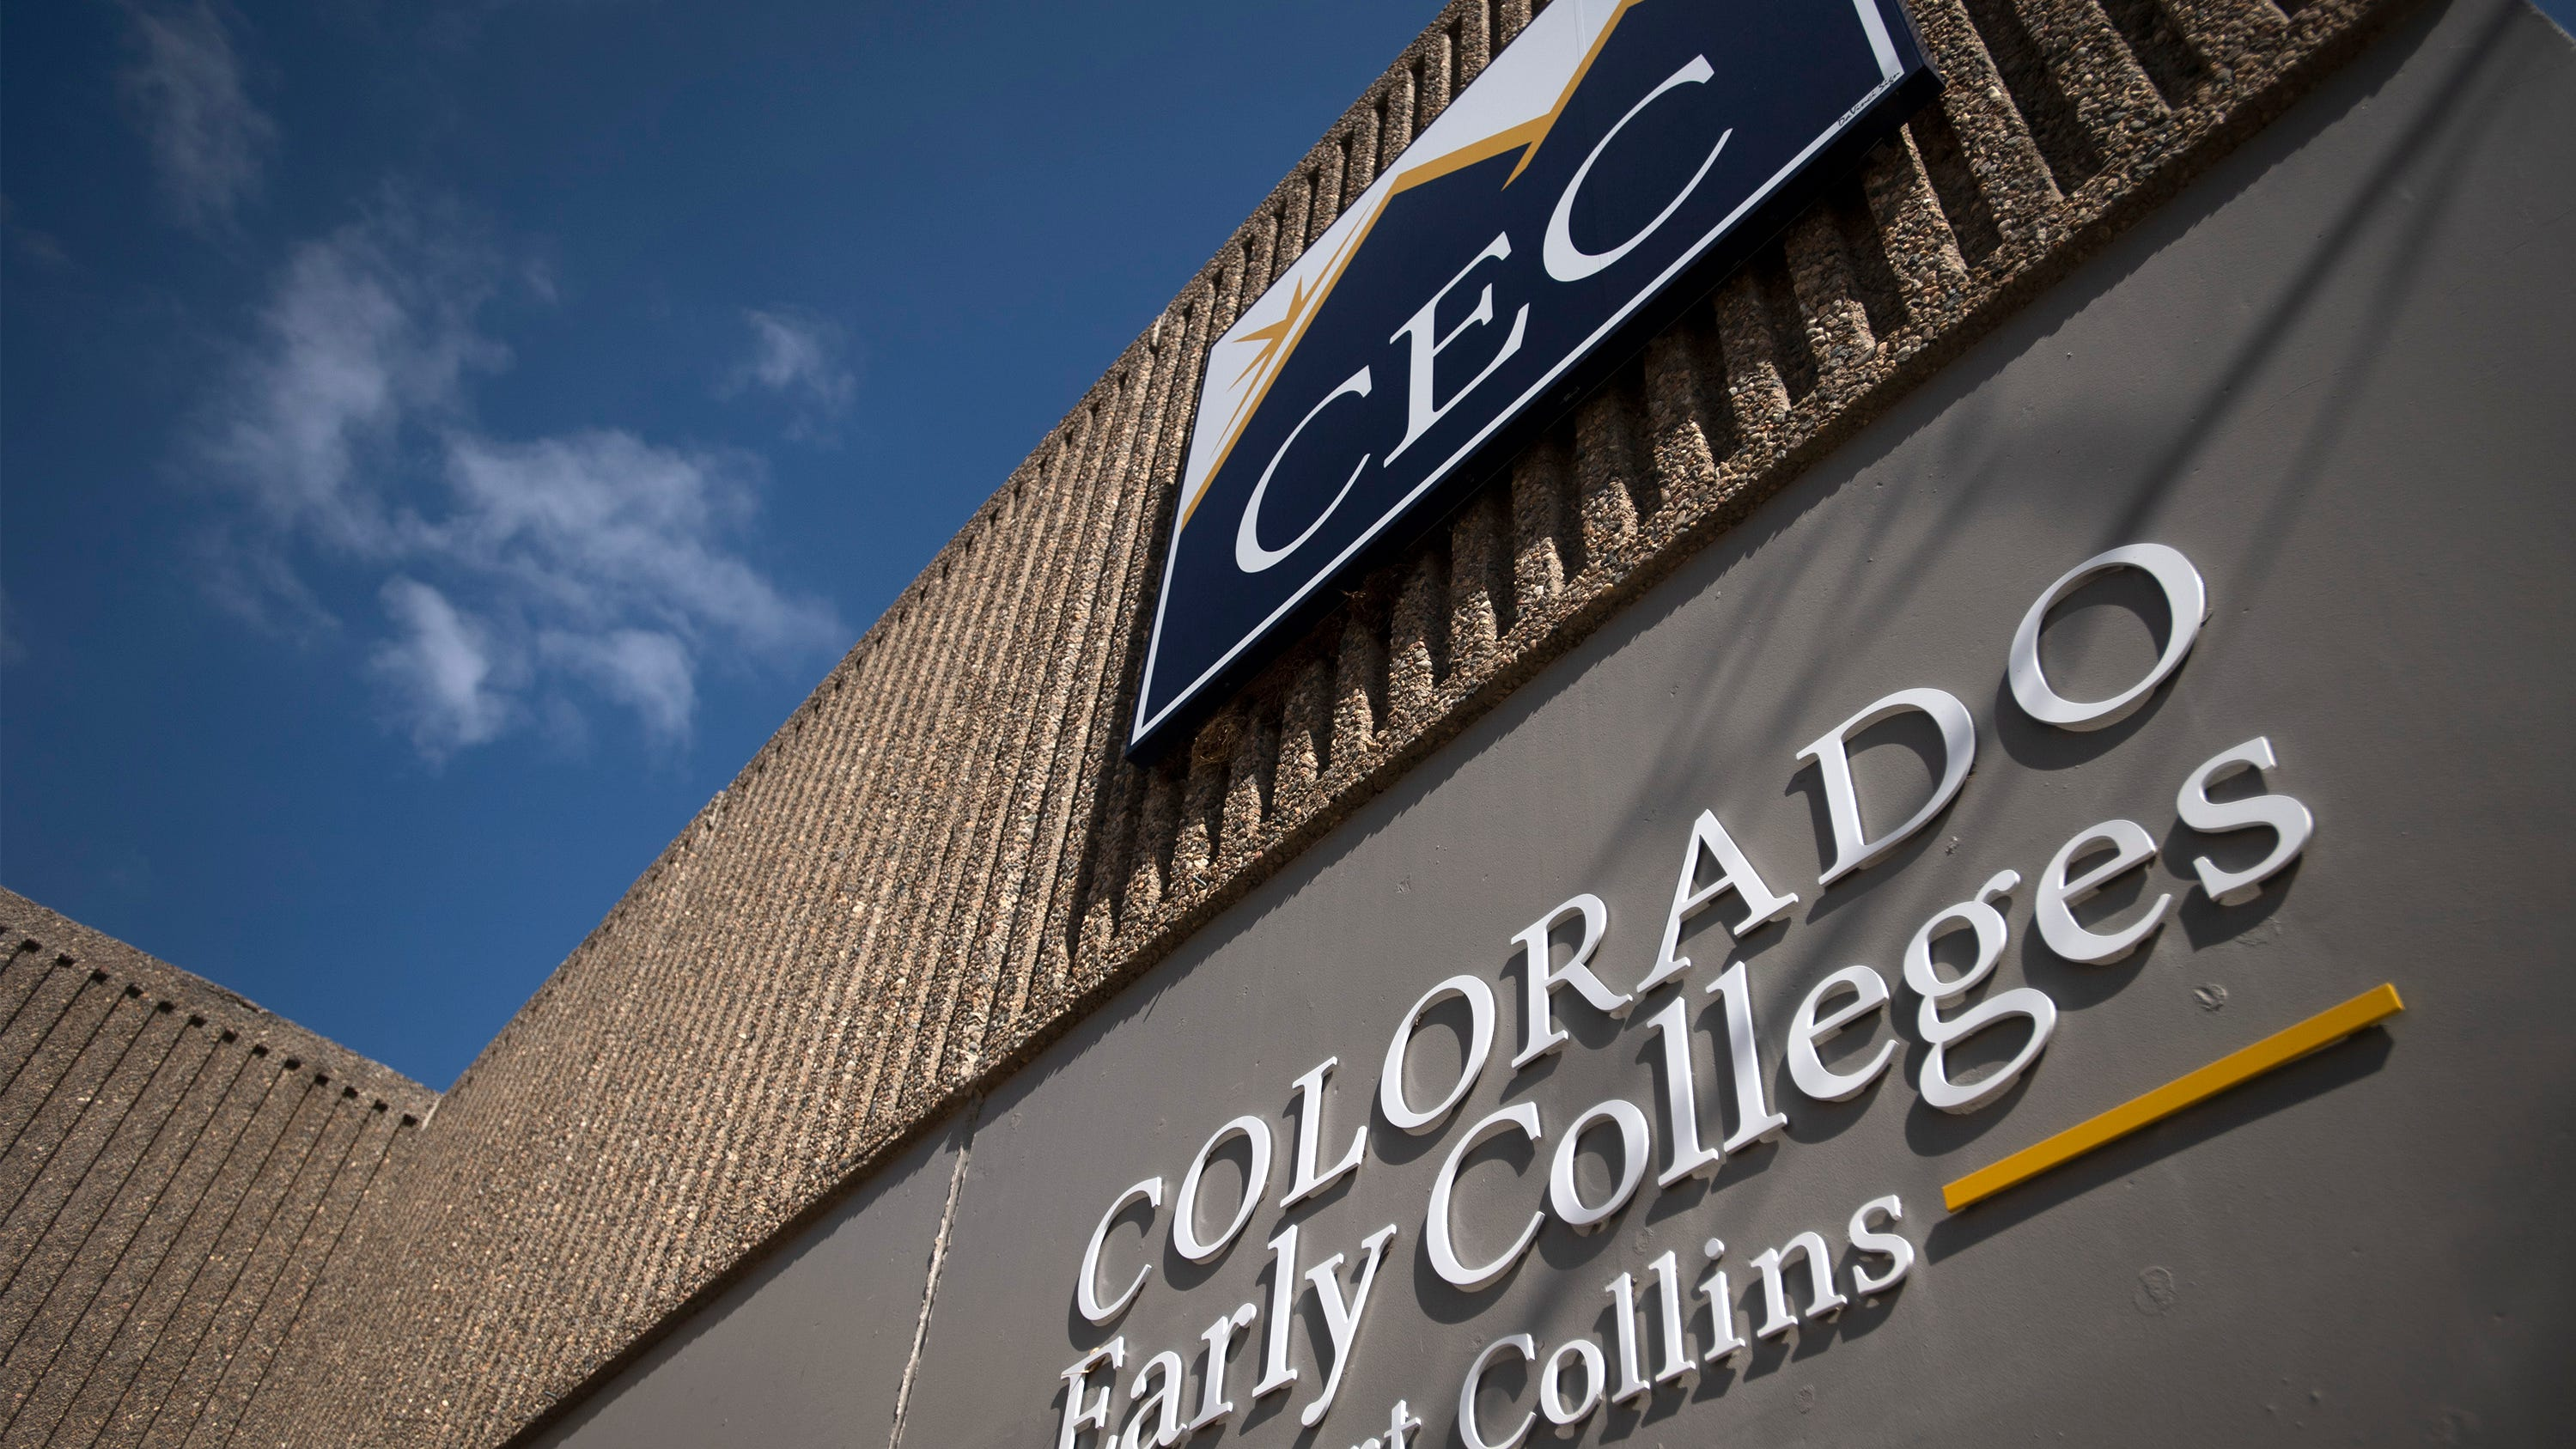 COVID-19 case numbers at Fort Collins-area private, charter schools